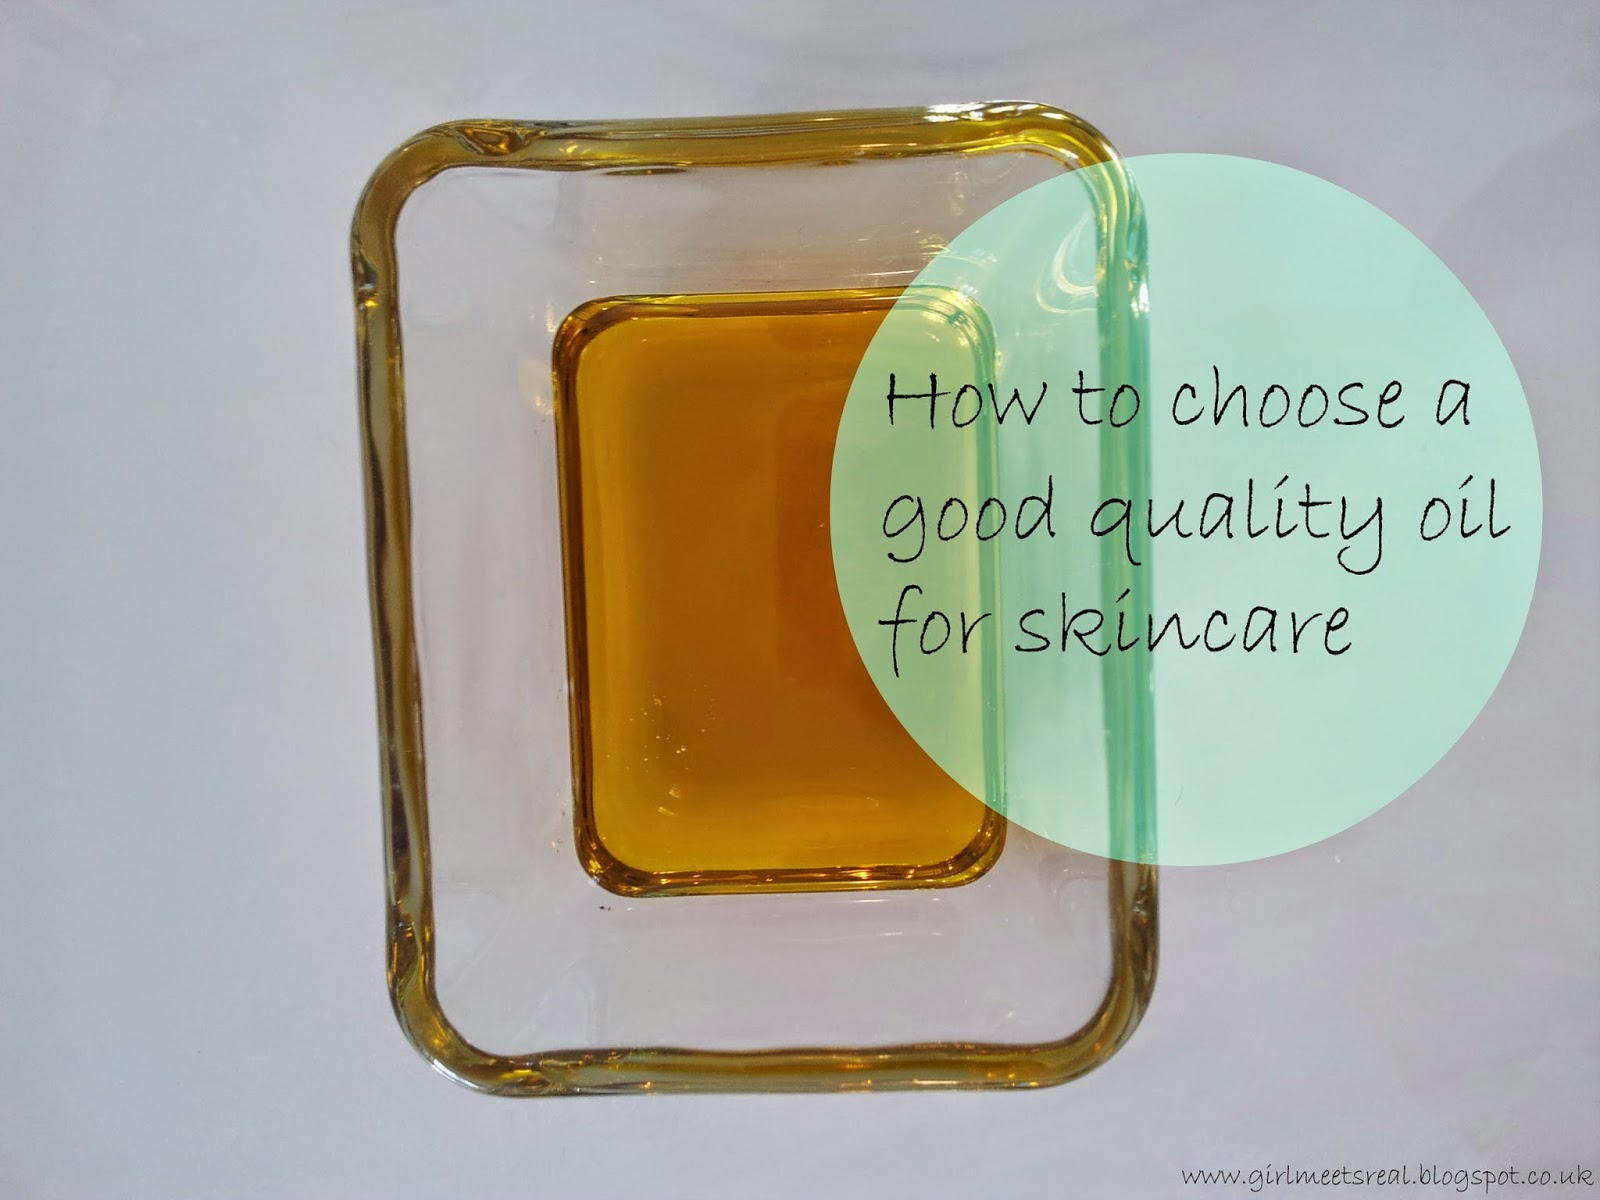 How to choose a good quality oil for skincare